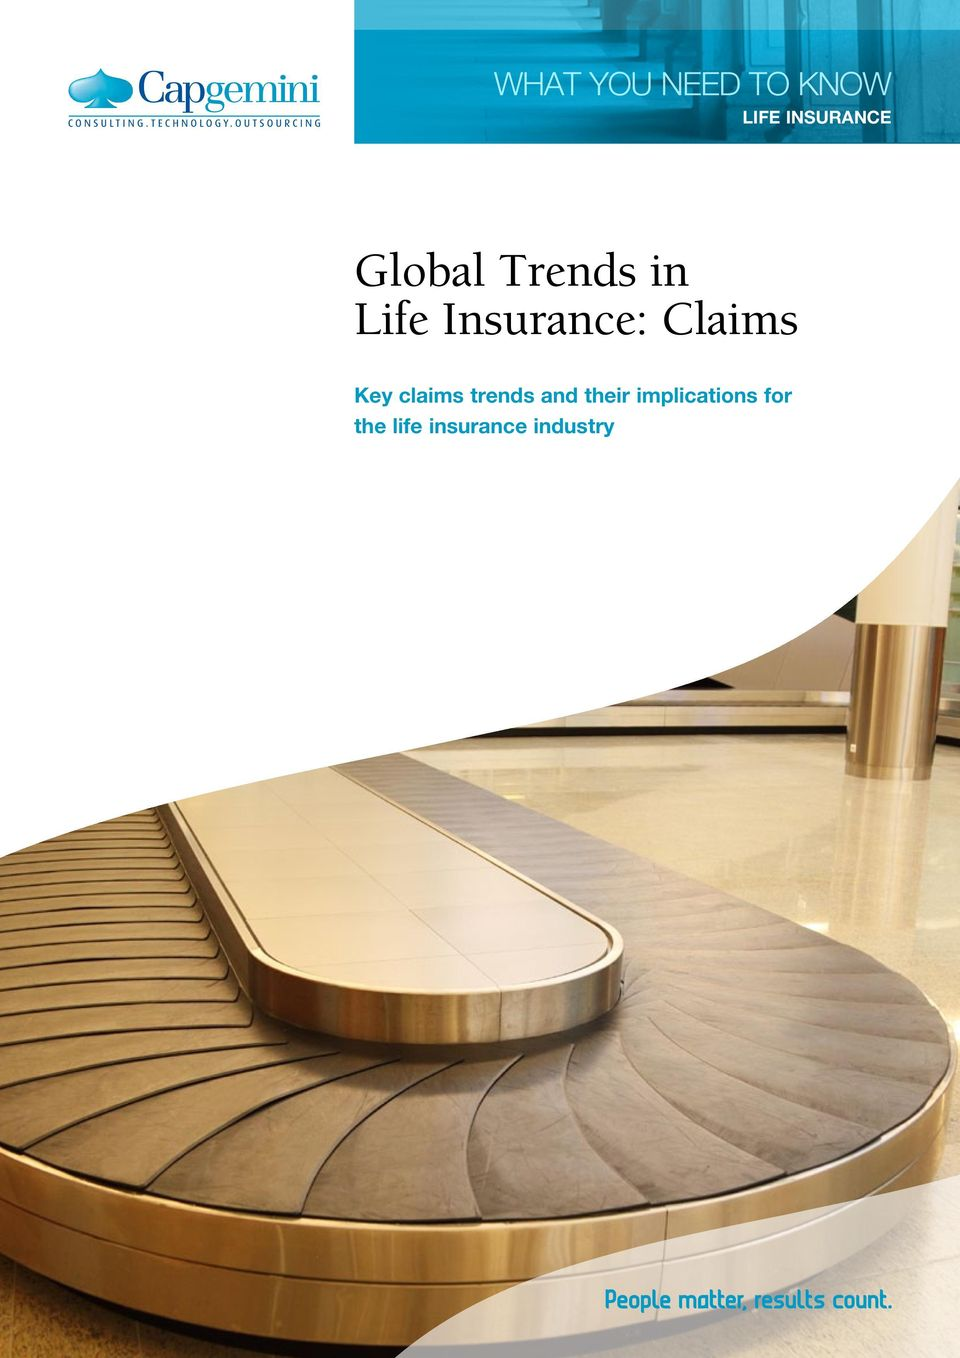 Claims Key claims trends and their